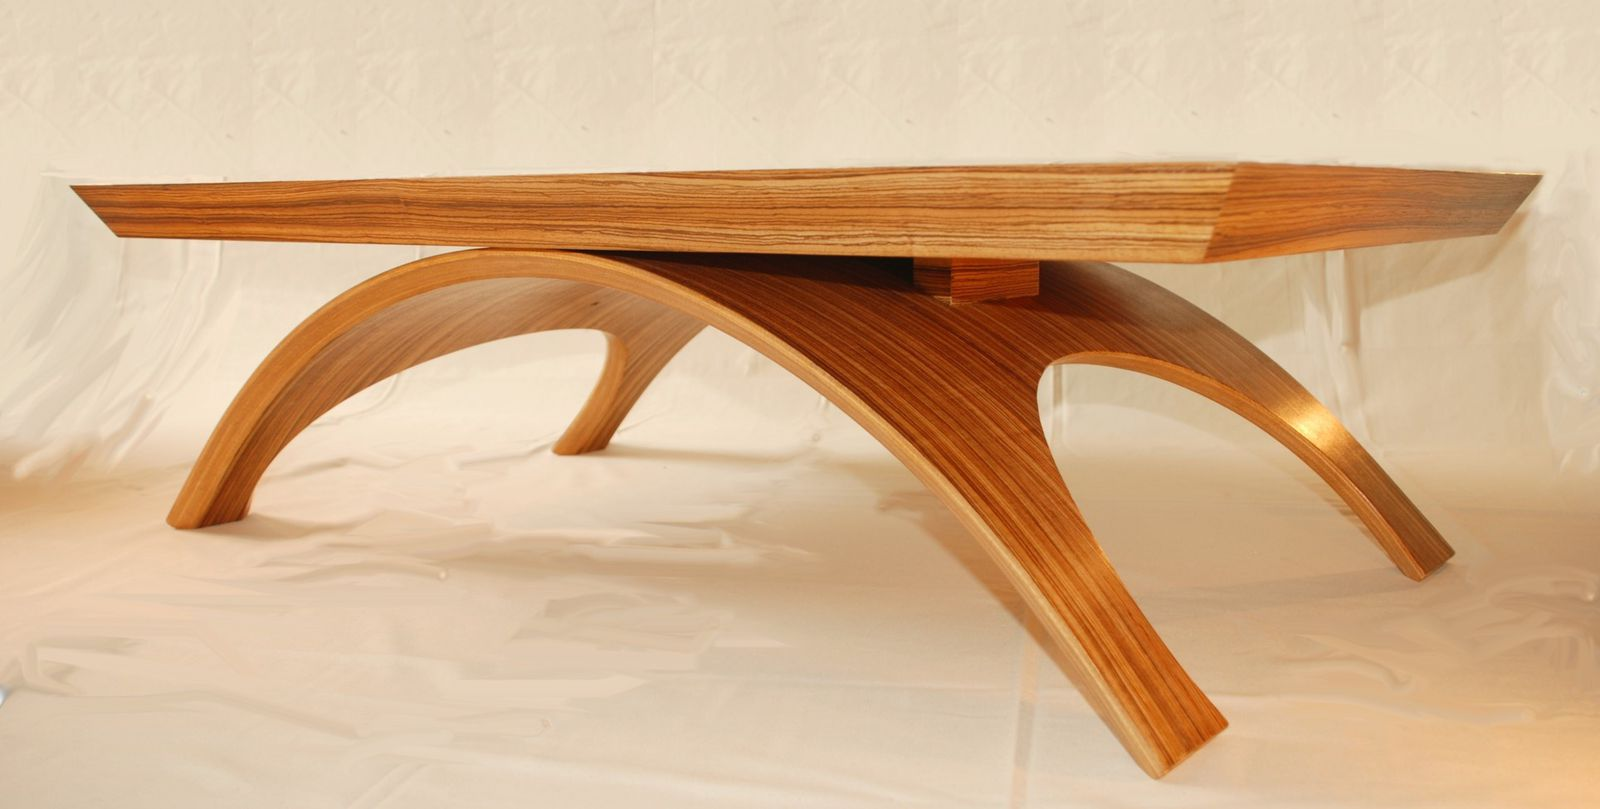 table basse contemporaine zebrano atelier pourquoi pas mobilier design sur mesures